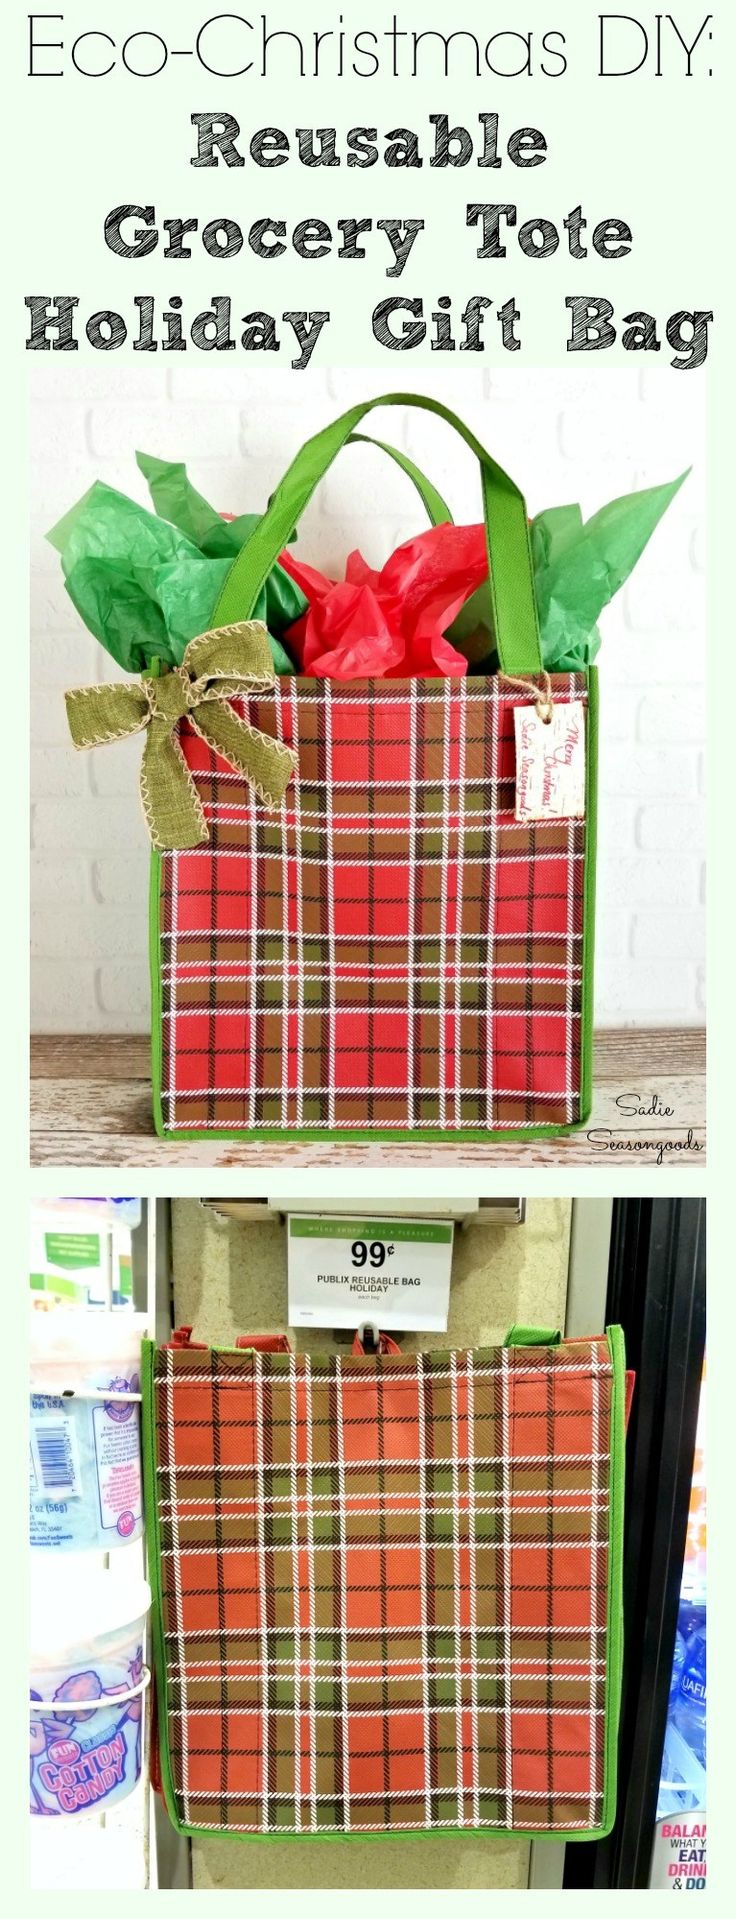 17 Best Green Living Images On Pinterest Cleaning Hacks Wiring Money Publix Give A Gift Within This Christmas By Repurposing Reusable Grocery Tote Bag